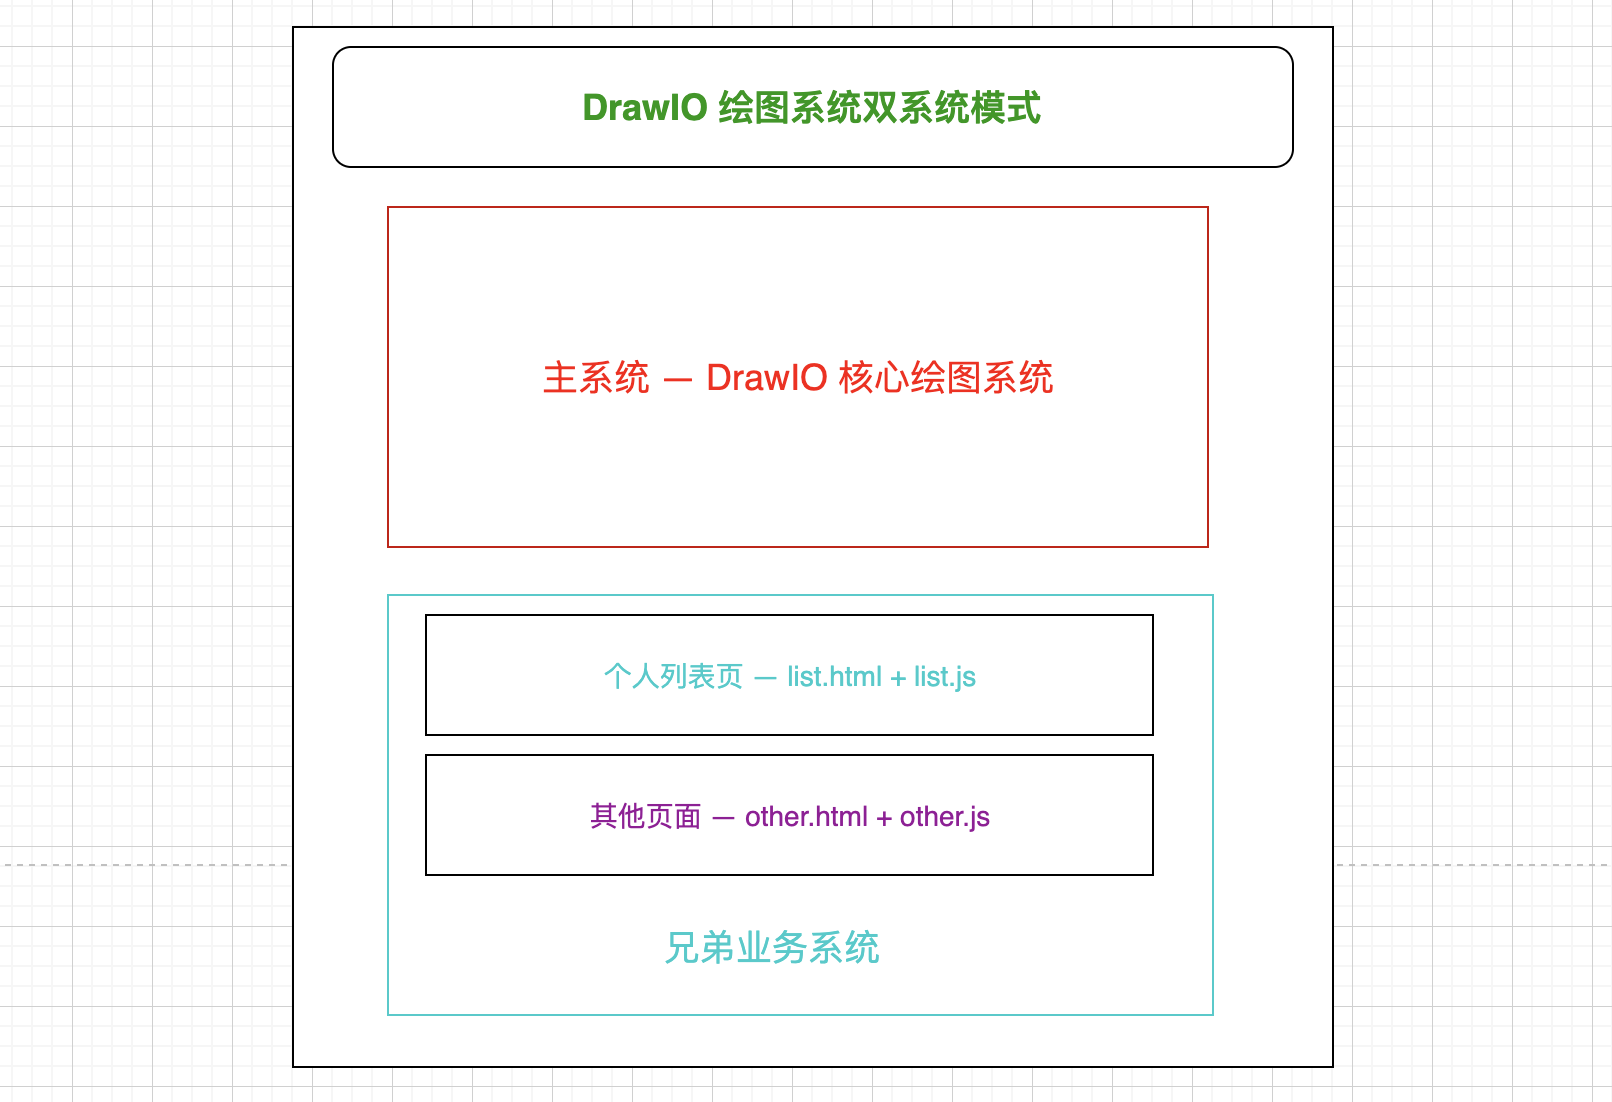 DrawIO Two System Structure